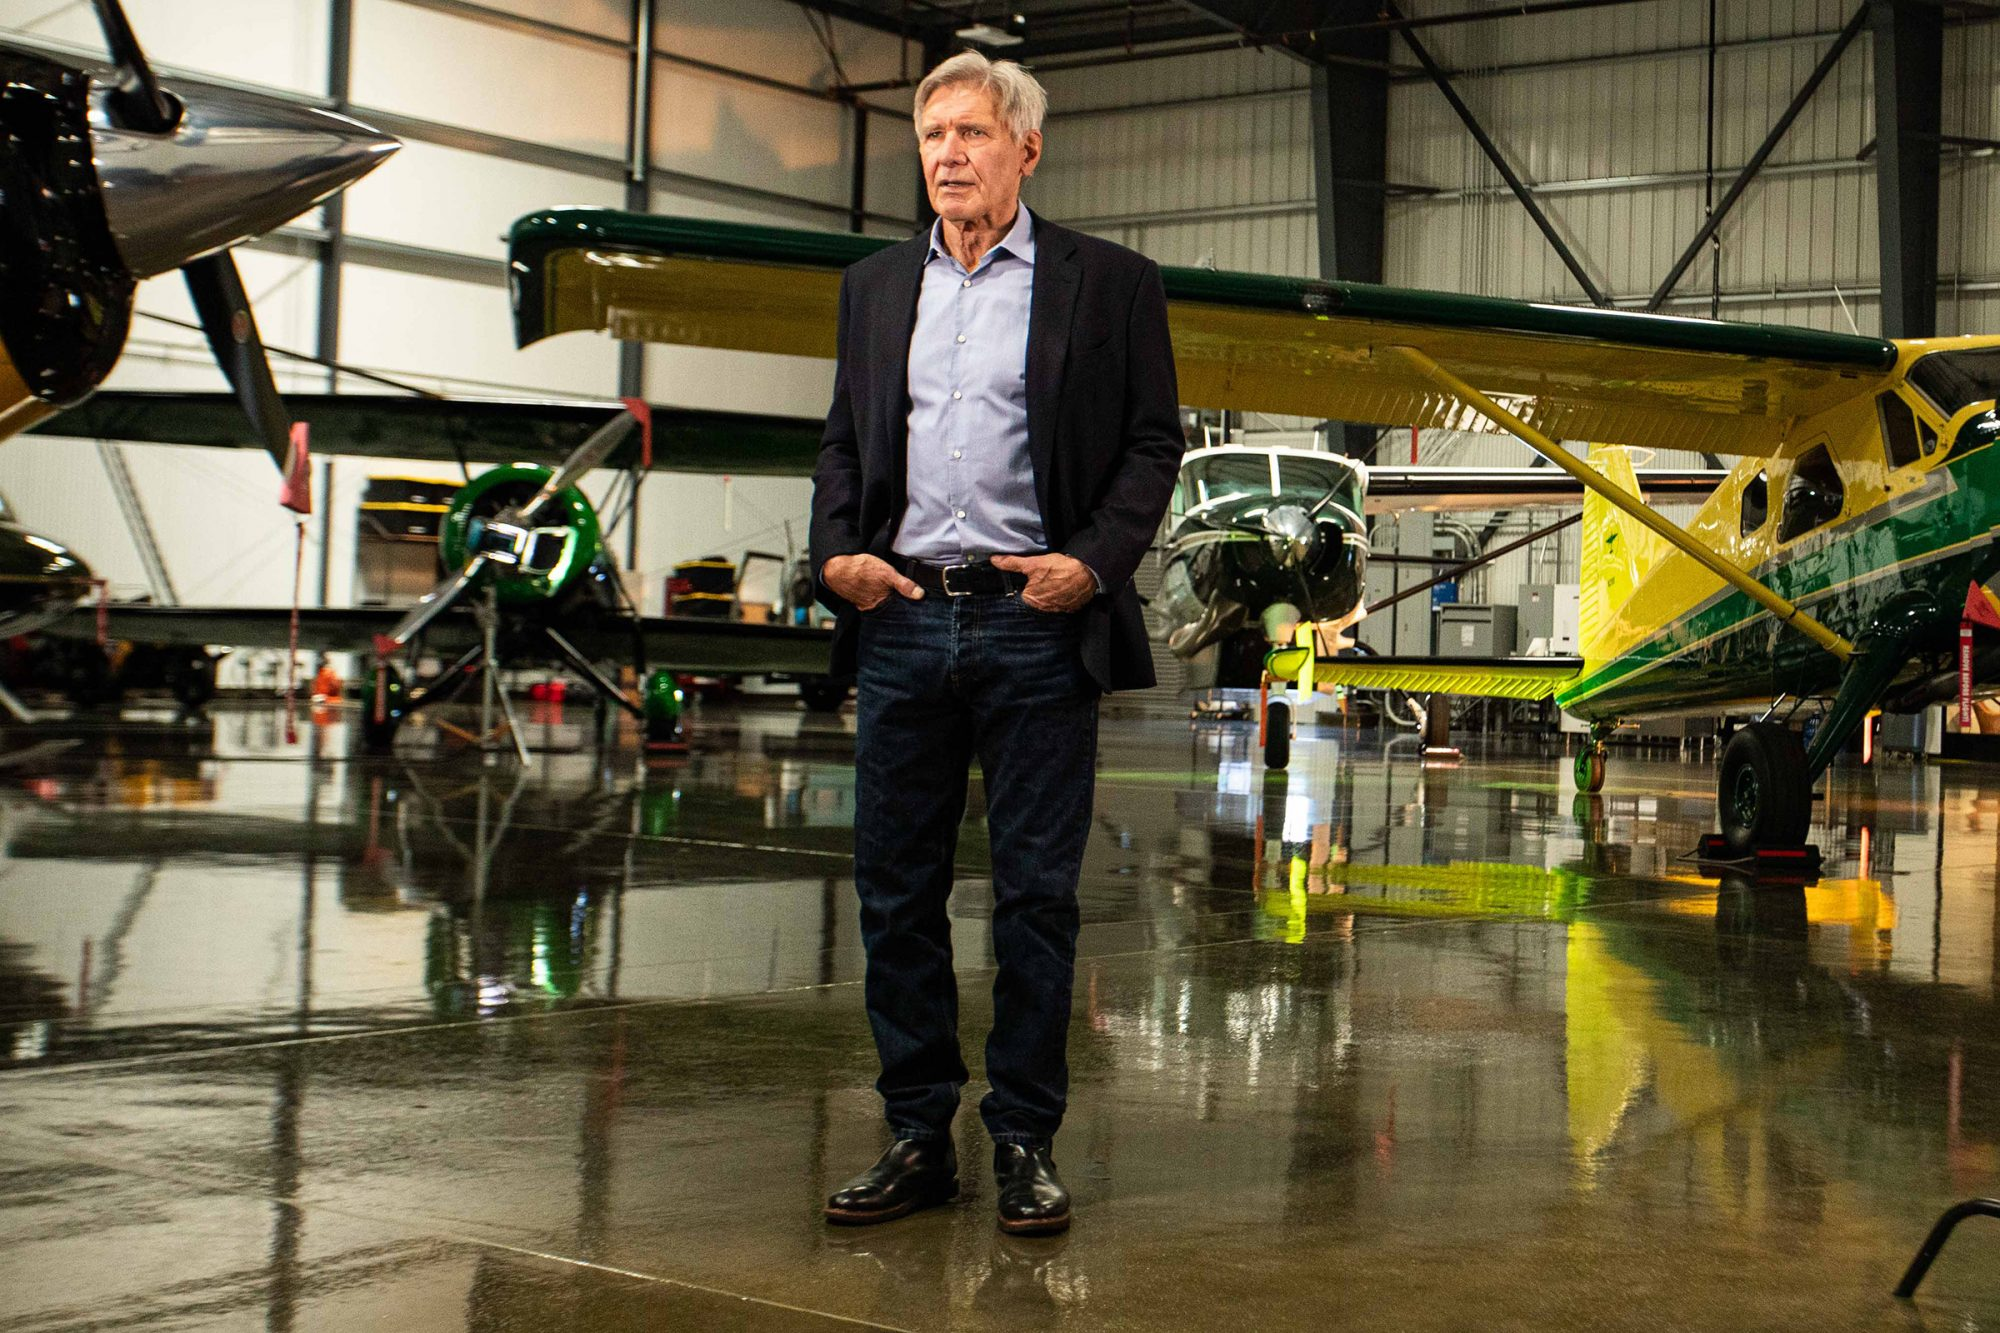 Harrison Ford Is a Spokesman for COVID-19 Disaster Relief Response Nonprofit Airlink